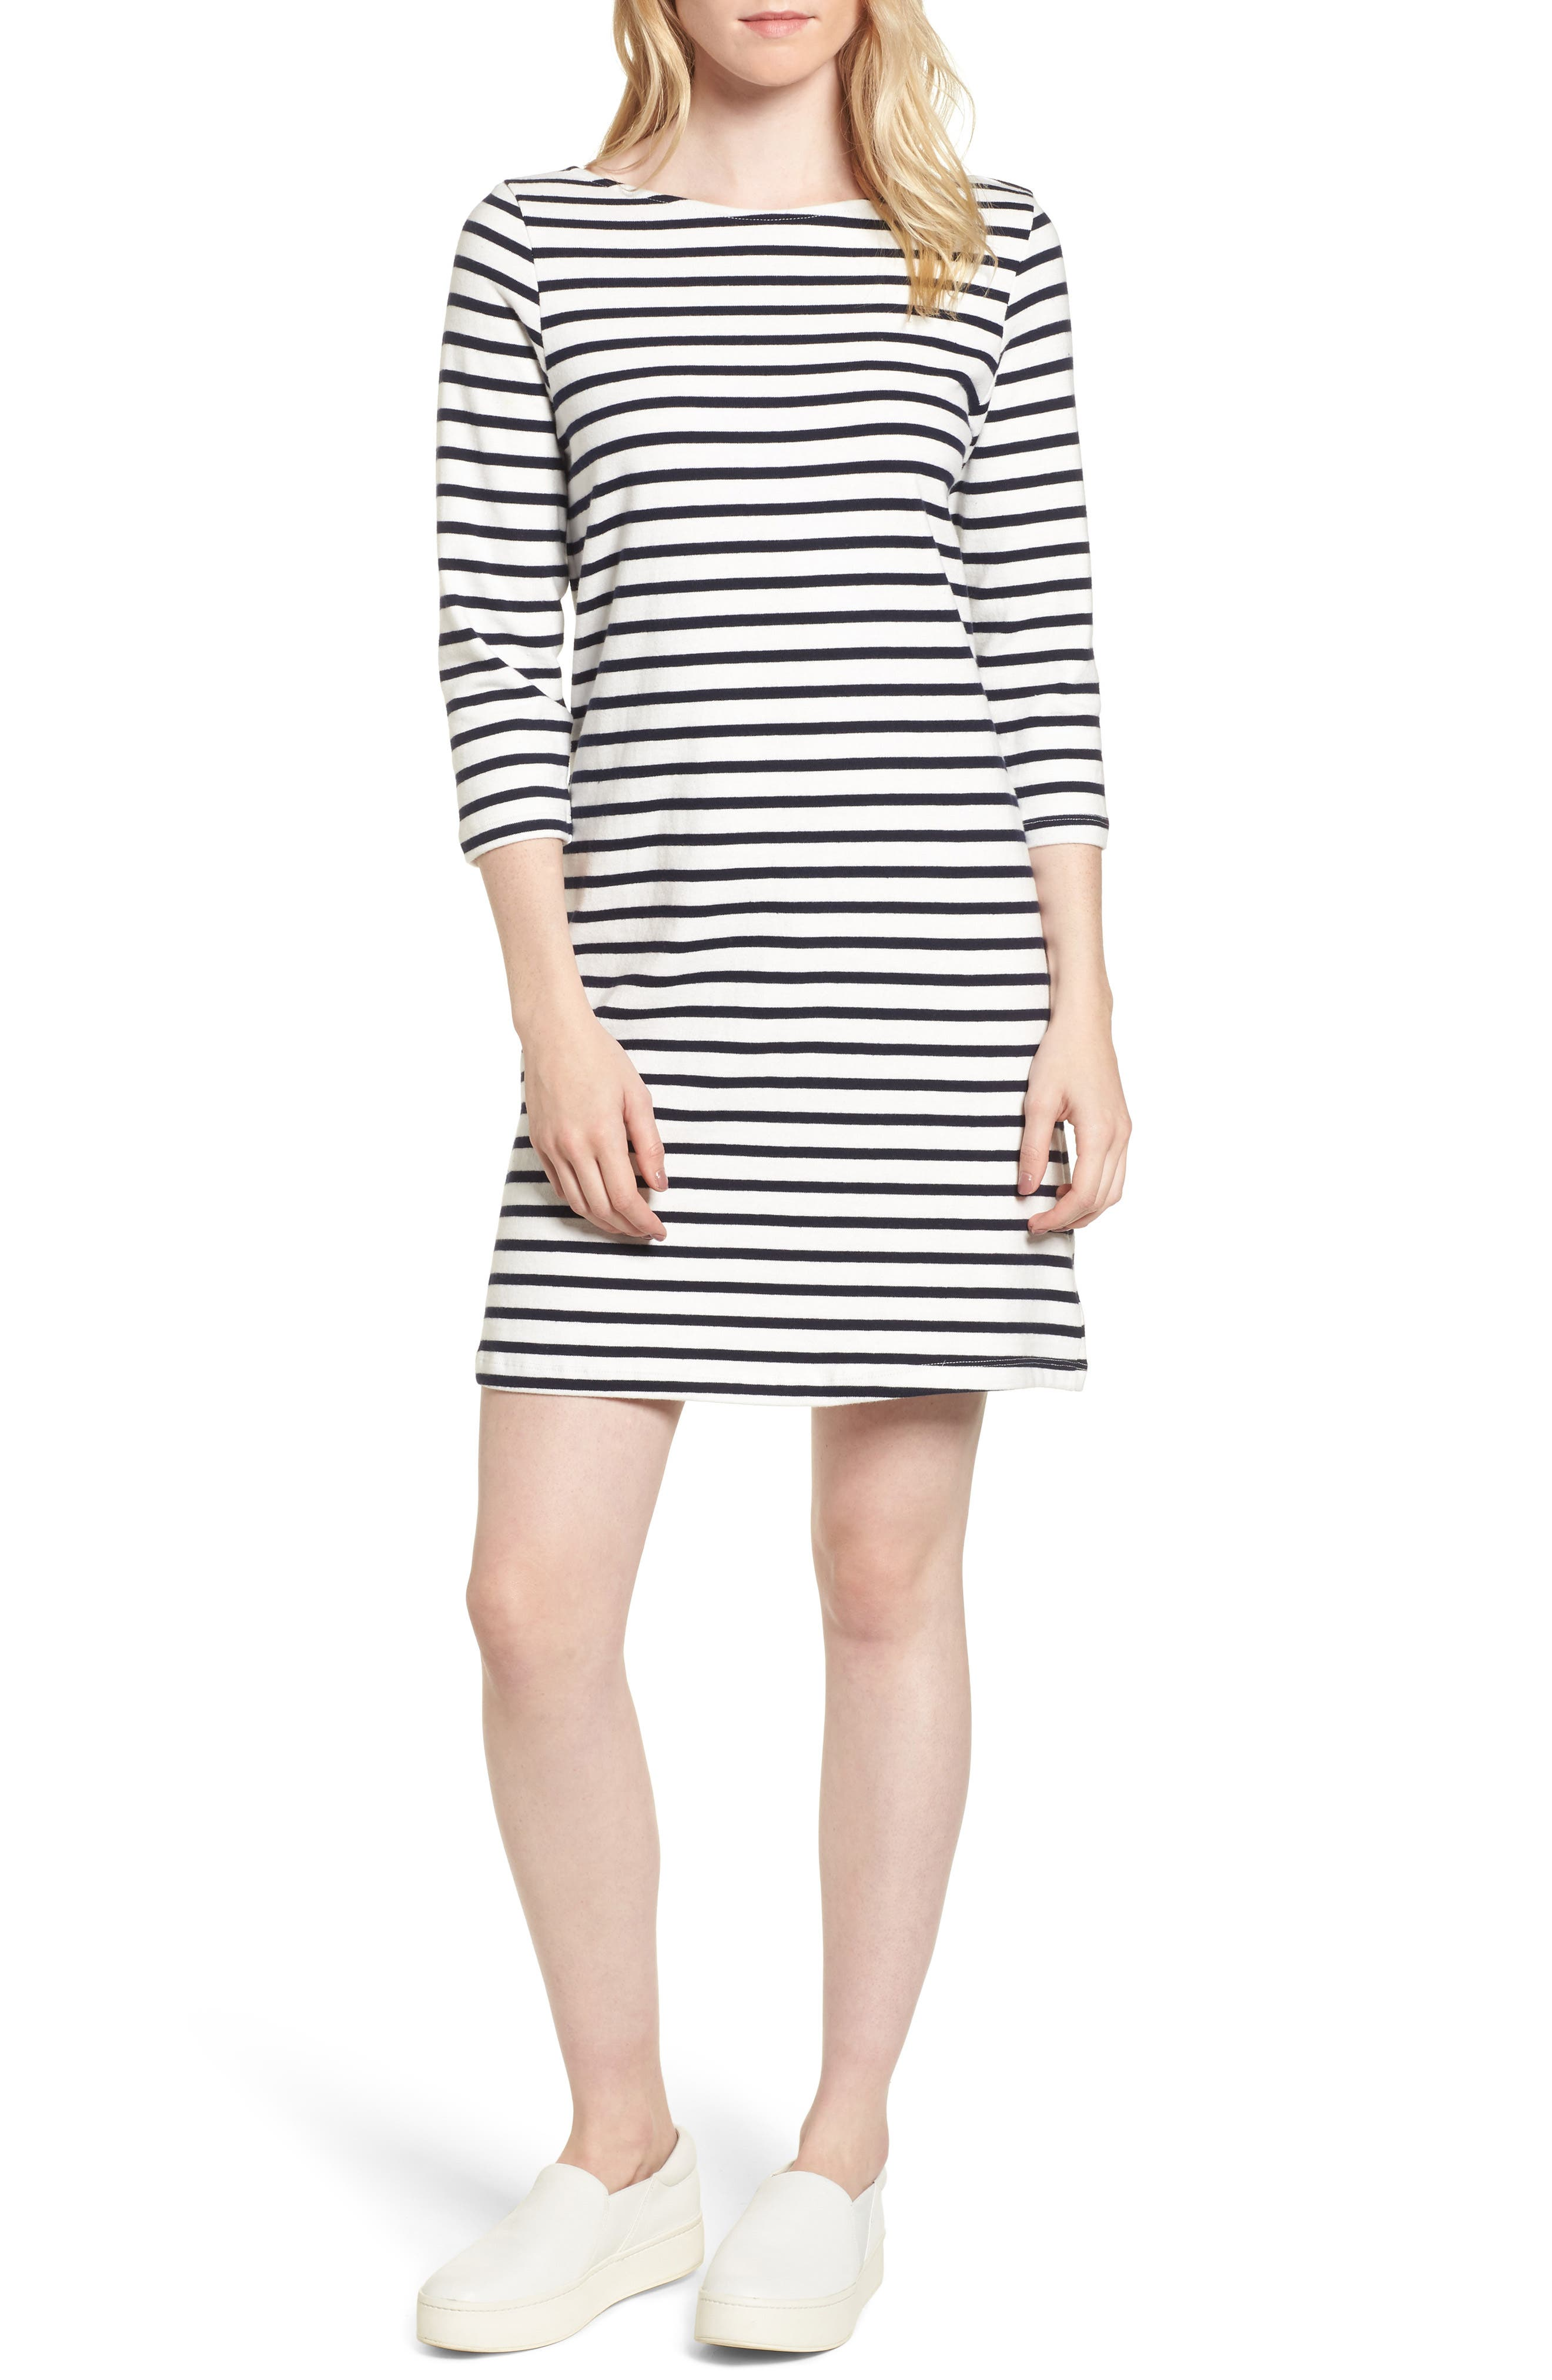 Trista Organic Cotton Dress,                         Main,                         color, Ivory/ Navy